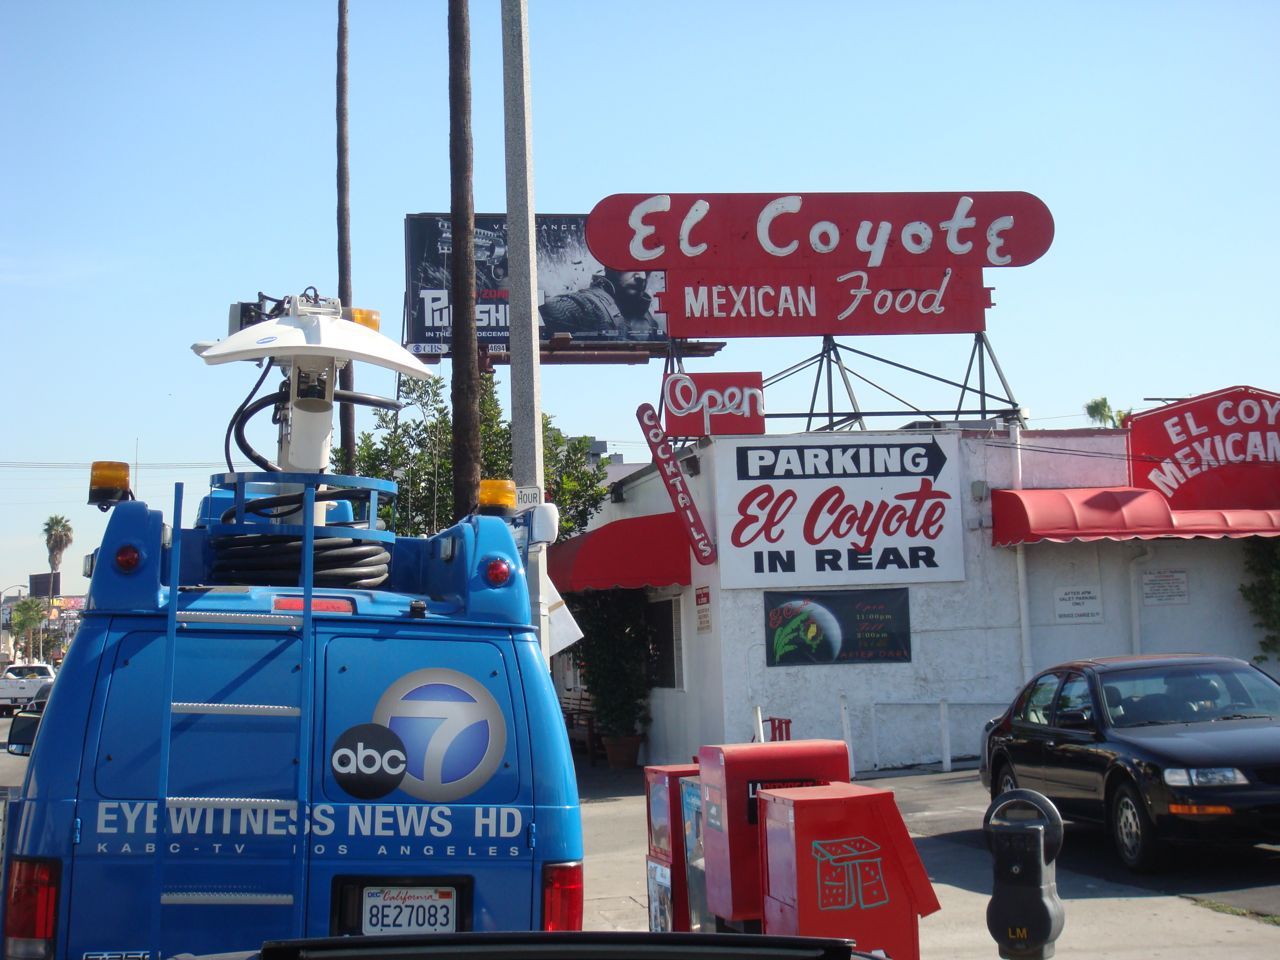 El Coyote Prop. 8 Press Conference Goes Horribly Wrong